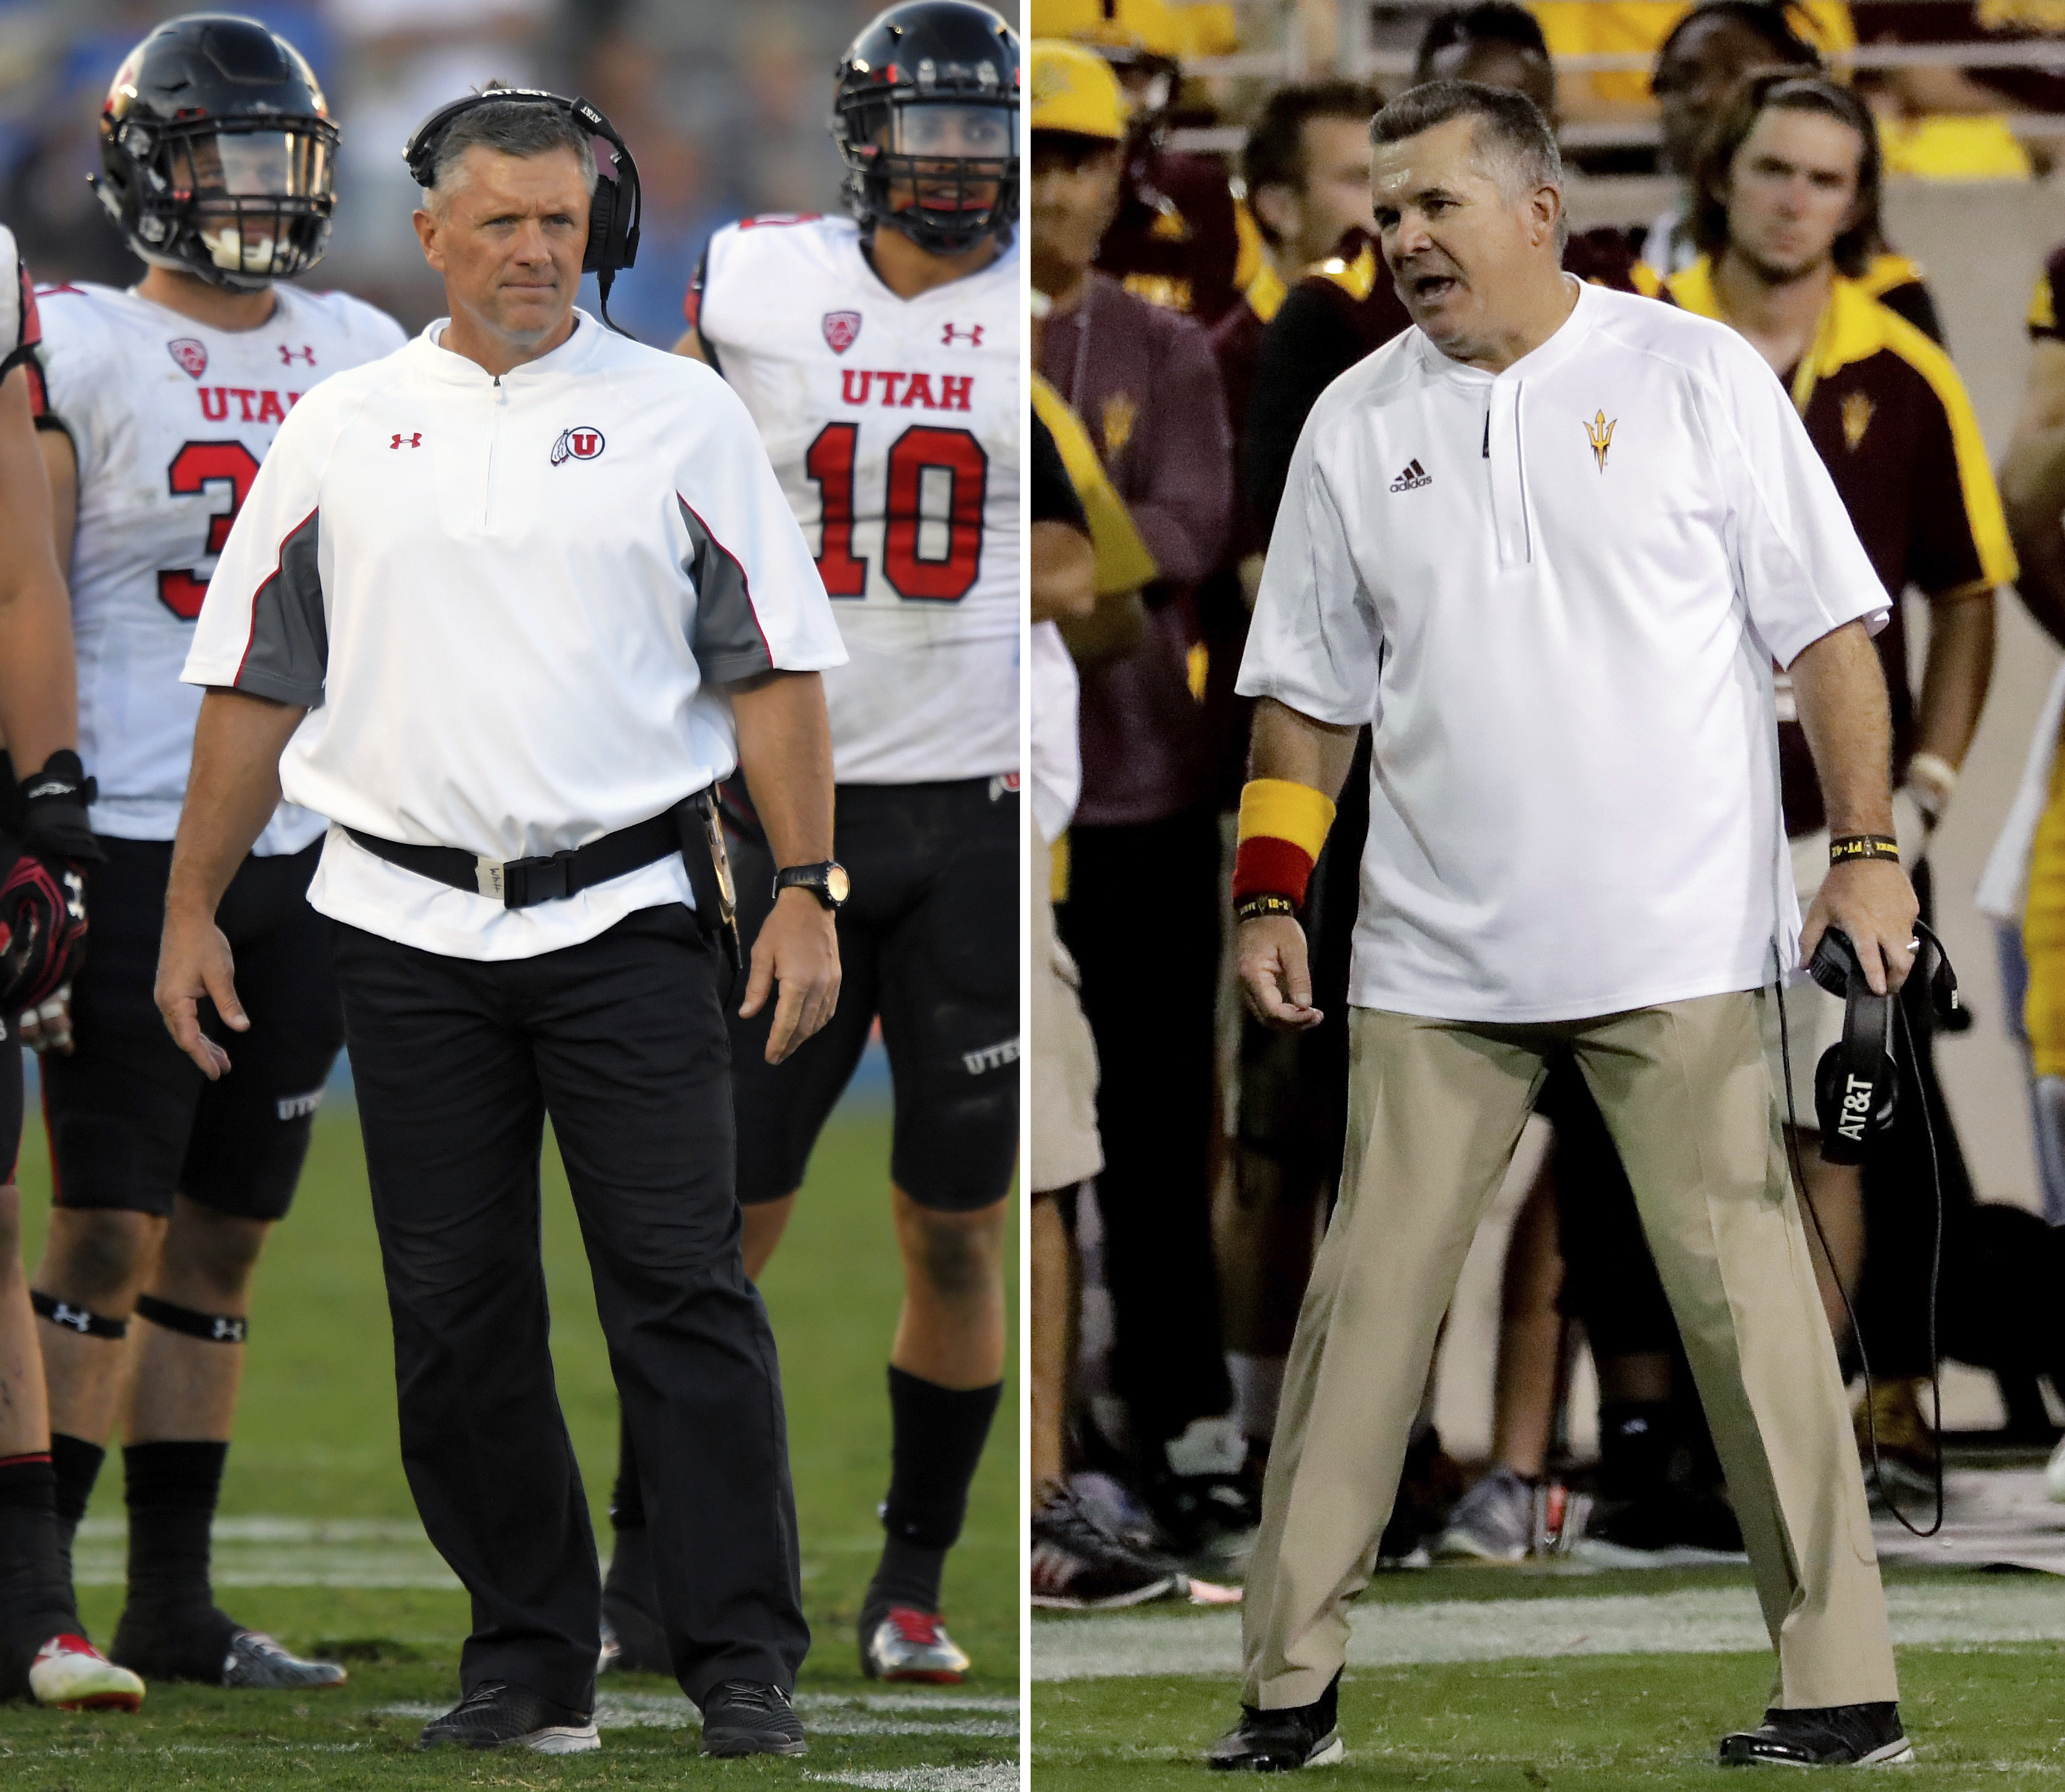 FILE - At left, in an Oct. 22, 2016, file photo, Utah head coach Kyle Whittingham watches from the sideline during the second half of an NCAA college football game against UCLA, in Pasadena, Calif. At right, also in an Oct. 22, 2016, file photo, Arizona S